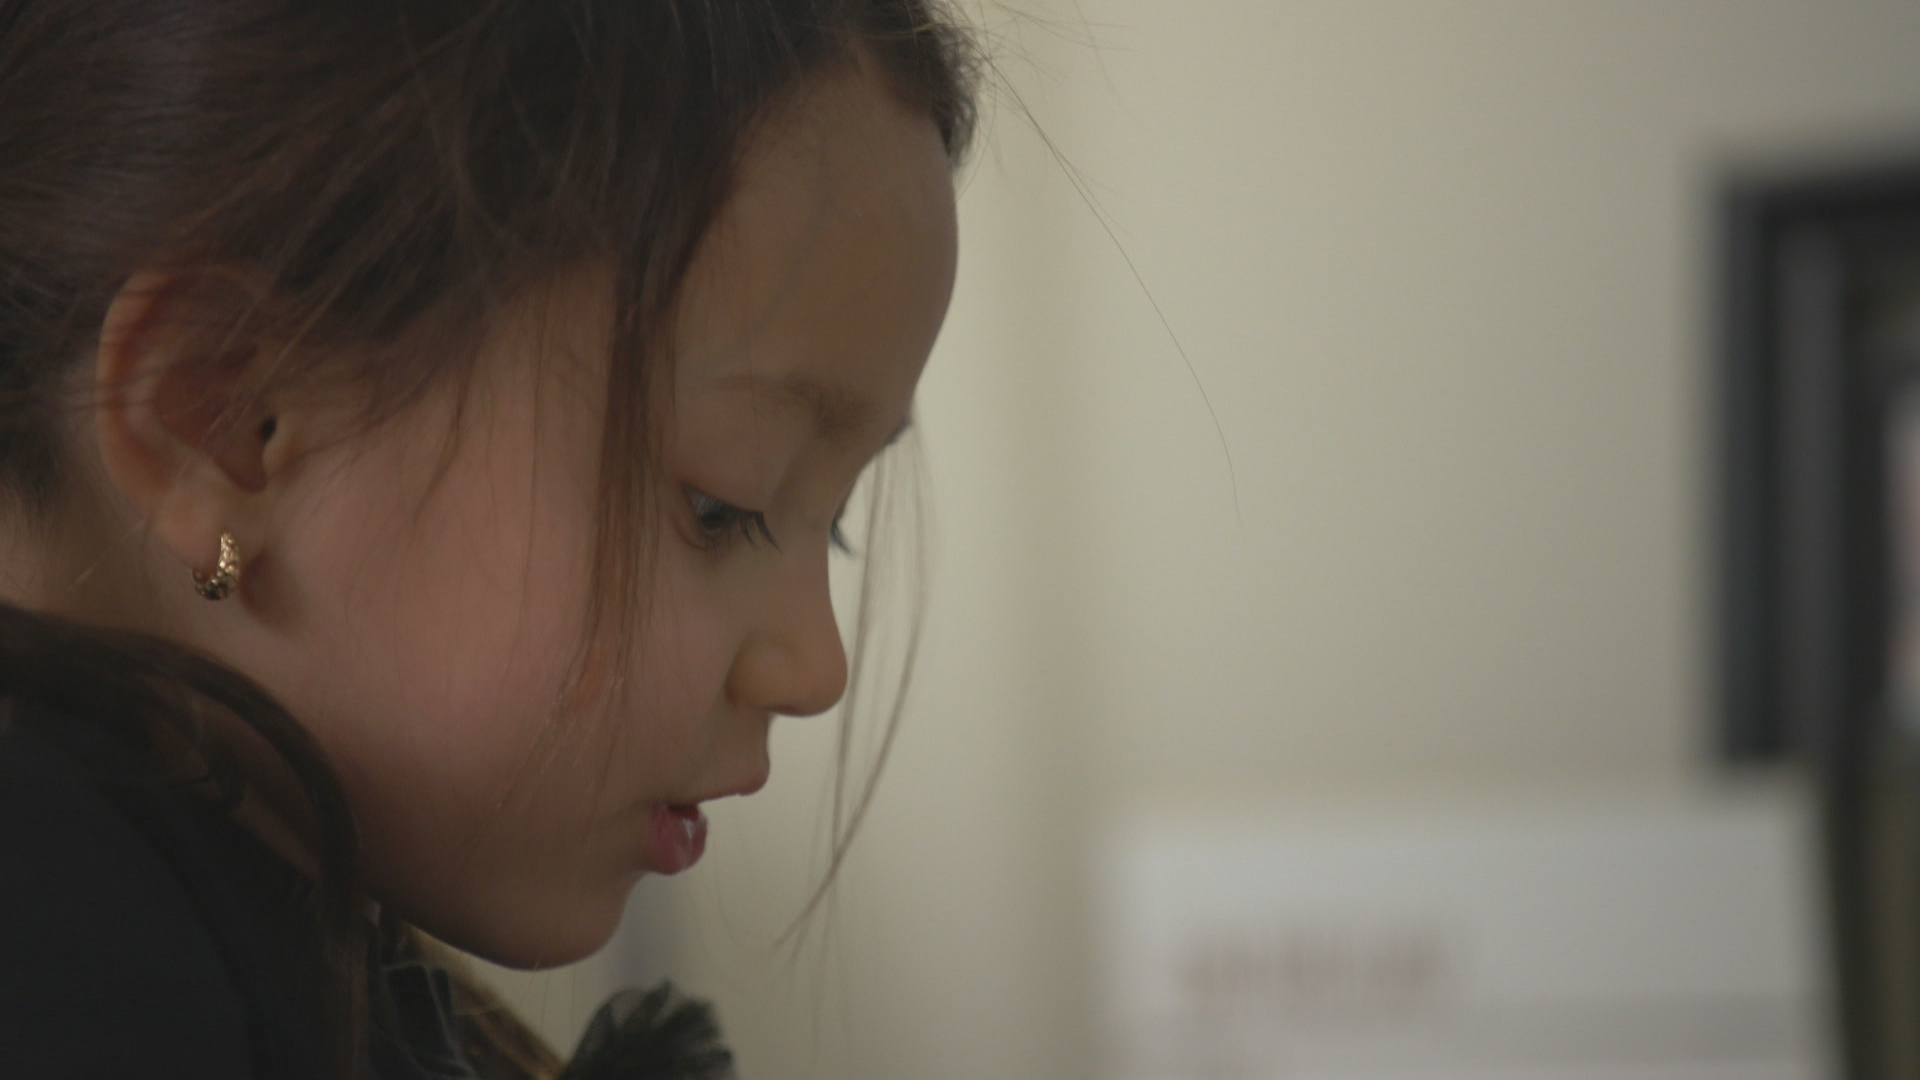 Five-year-old Mai-Linh had a close relationship with her father, Josh de Bock. (John Badcock/CBC)